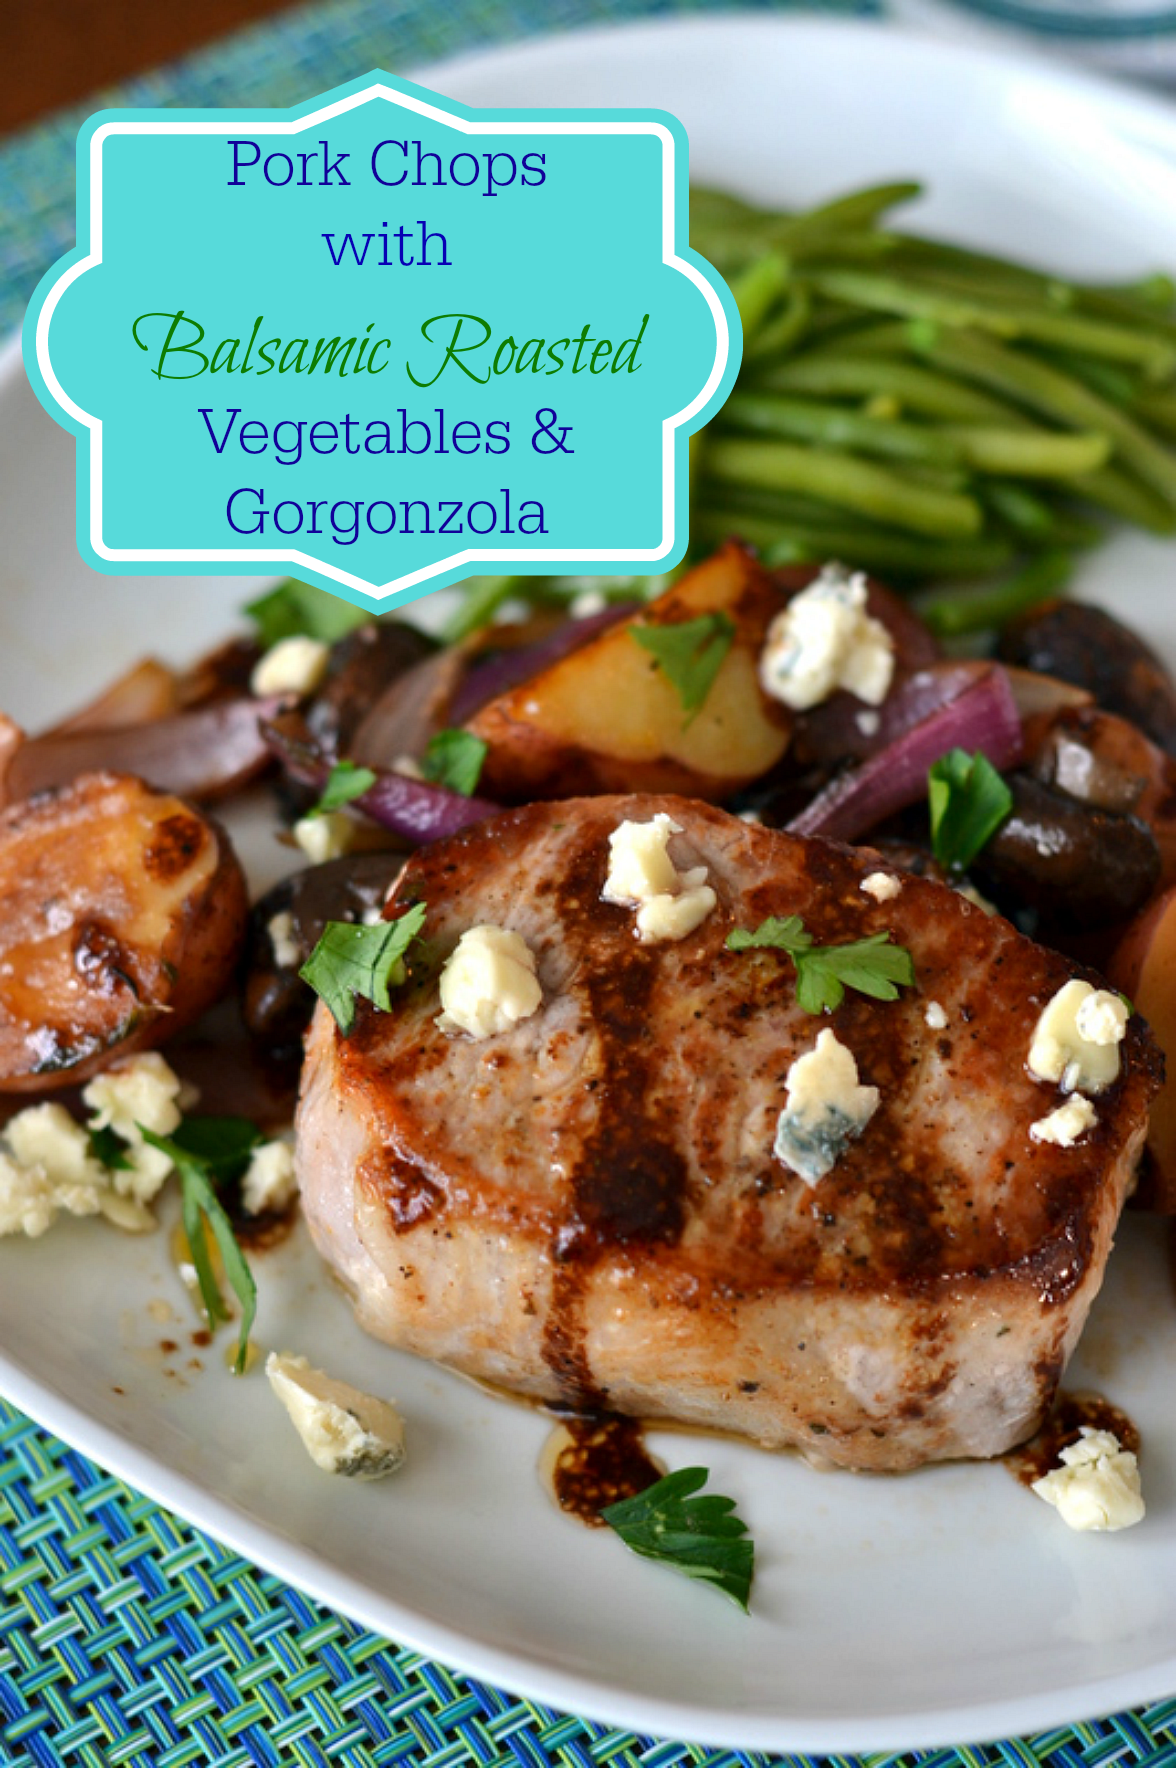 Pork Chops with Balsamic Roasted Vegetables and Gorgonzola - Chew Nibble Nosh